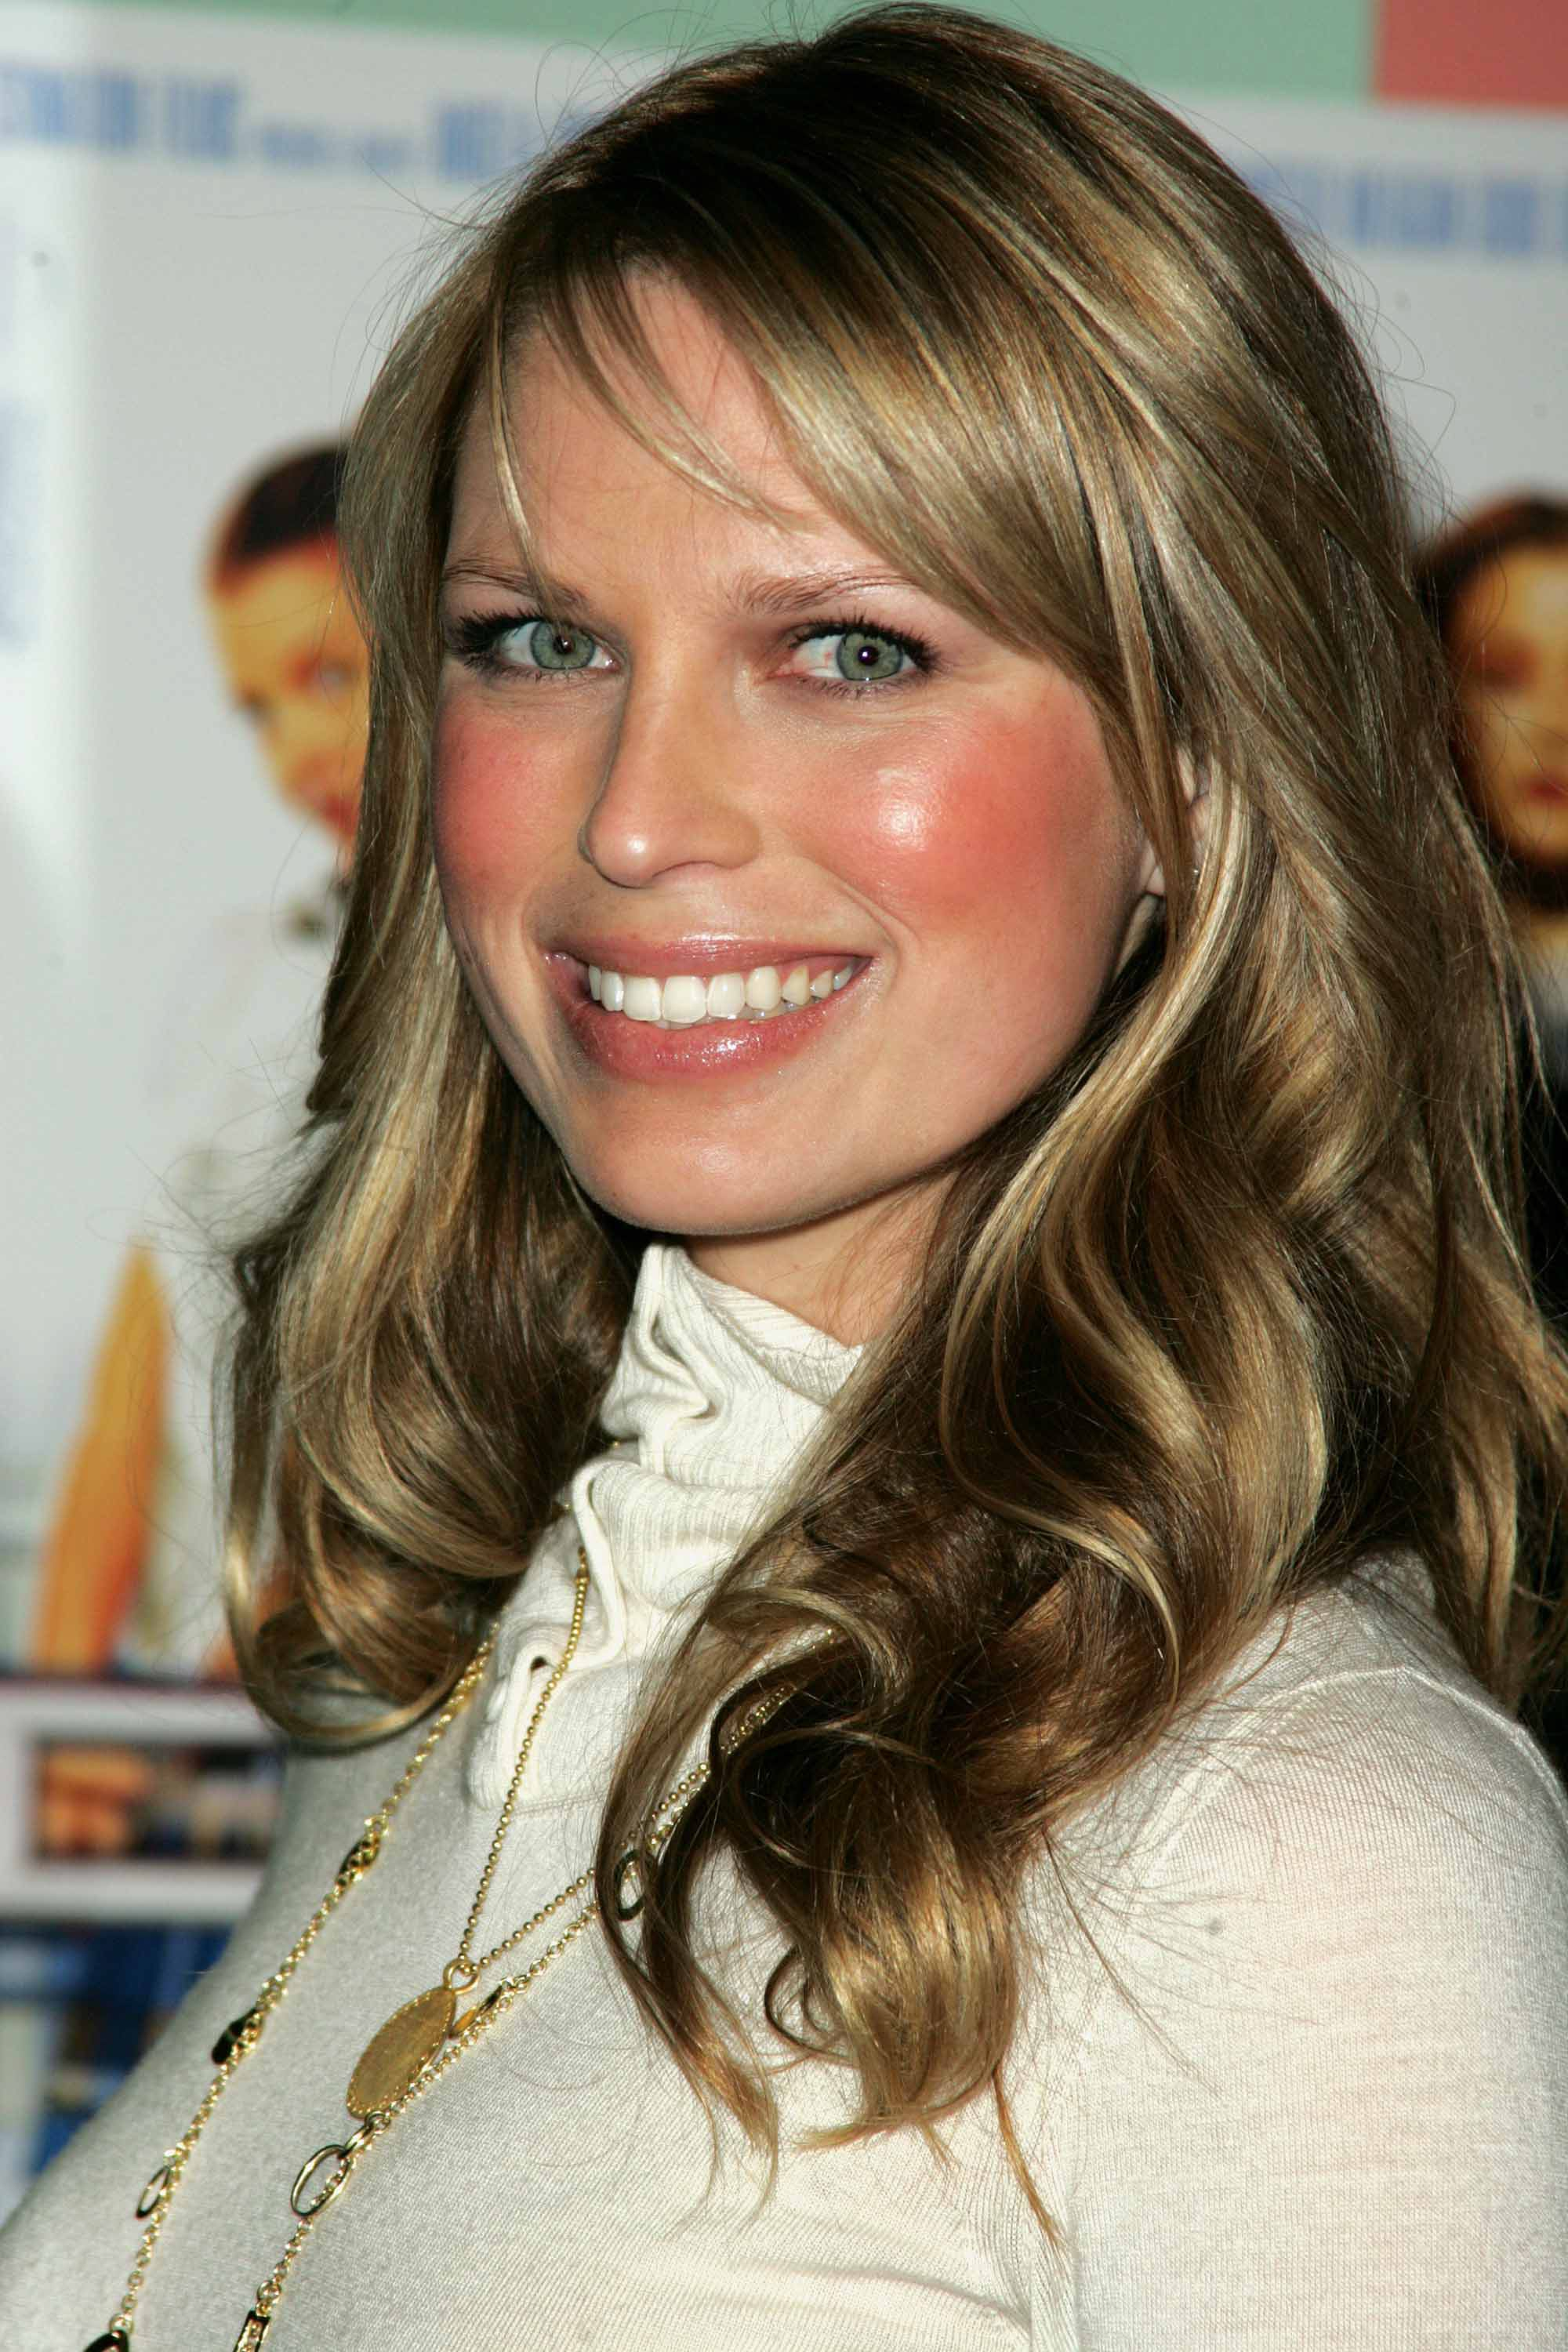 sara foster wdwsara foster height, sara foster wdw, sara foster wikipedia, sara foster attrice, sara foster wiki, sara foster actress, sara foster instagram, sara foster 90210, sara foster, sara foster imdb, sara foster tommy haas, sara foster daughter, sara foster entourage, sara foster brody jenner, sara foster facebook, sara foster net worth, sara foster husband, sara foster gigi hadid, sara foster pregnant, sara foster twitter